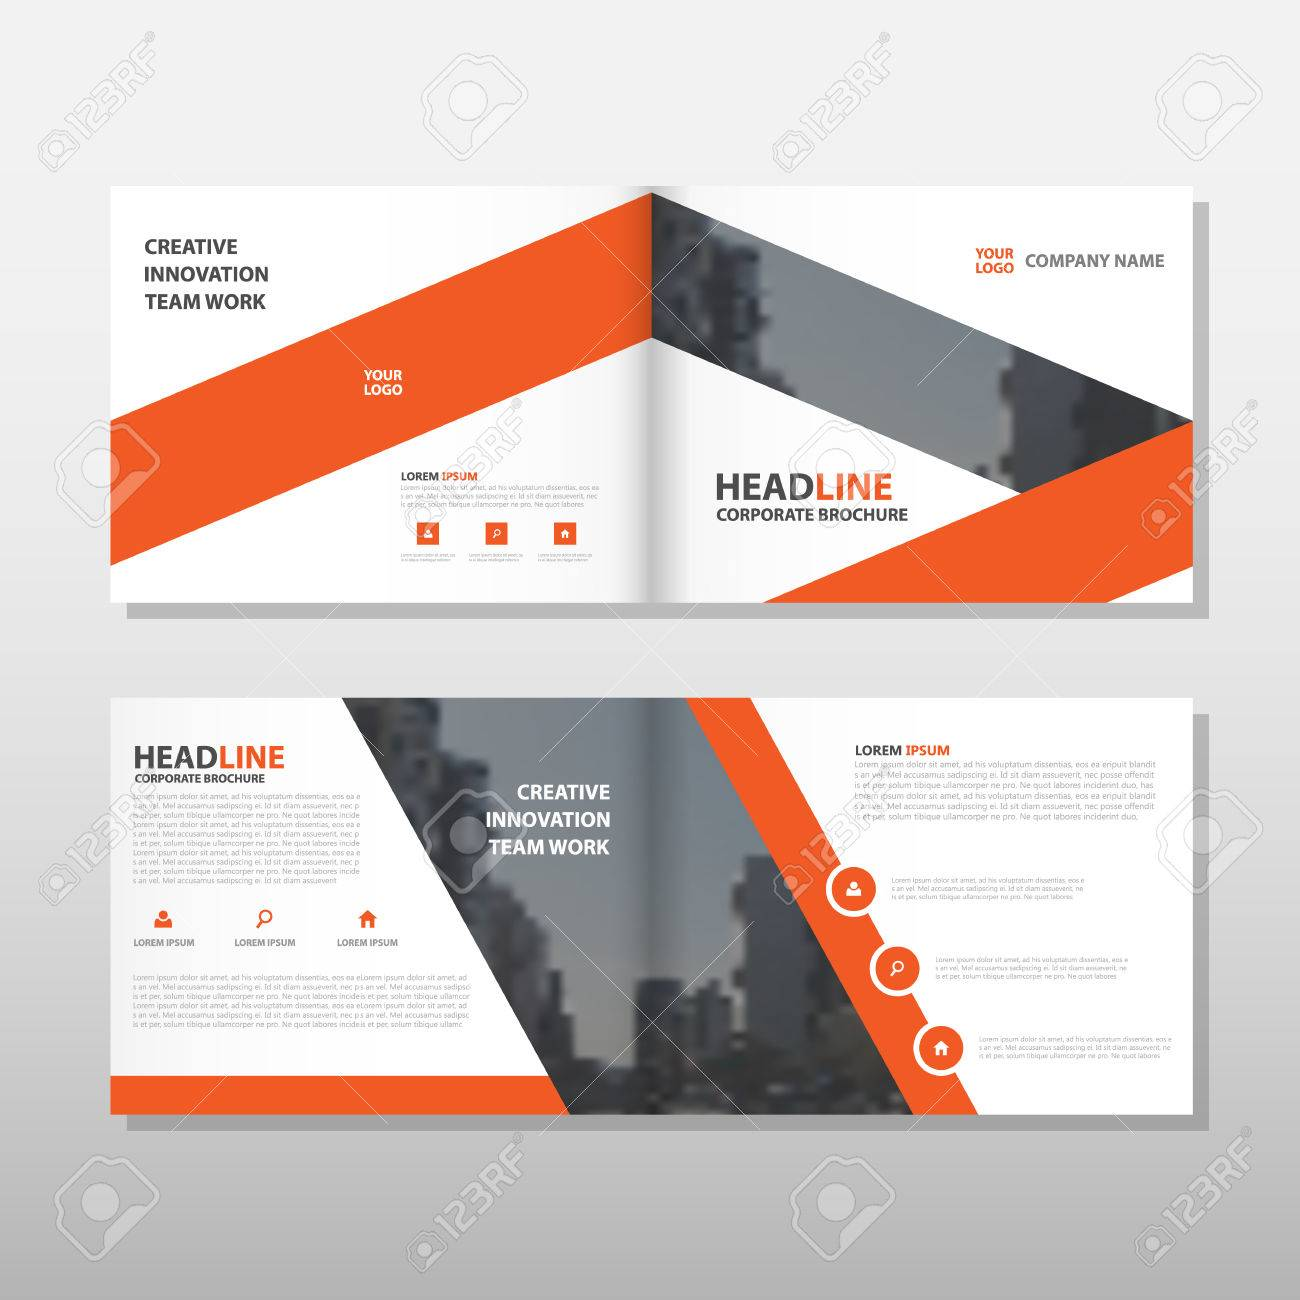 doc annual report template design annual report orange brochure leaflet flyer annual report template design annual report template design